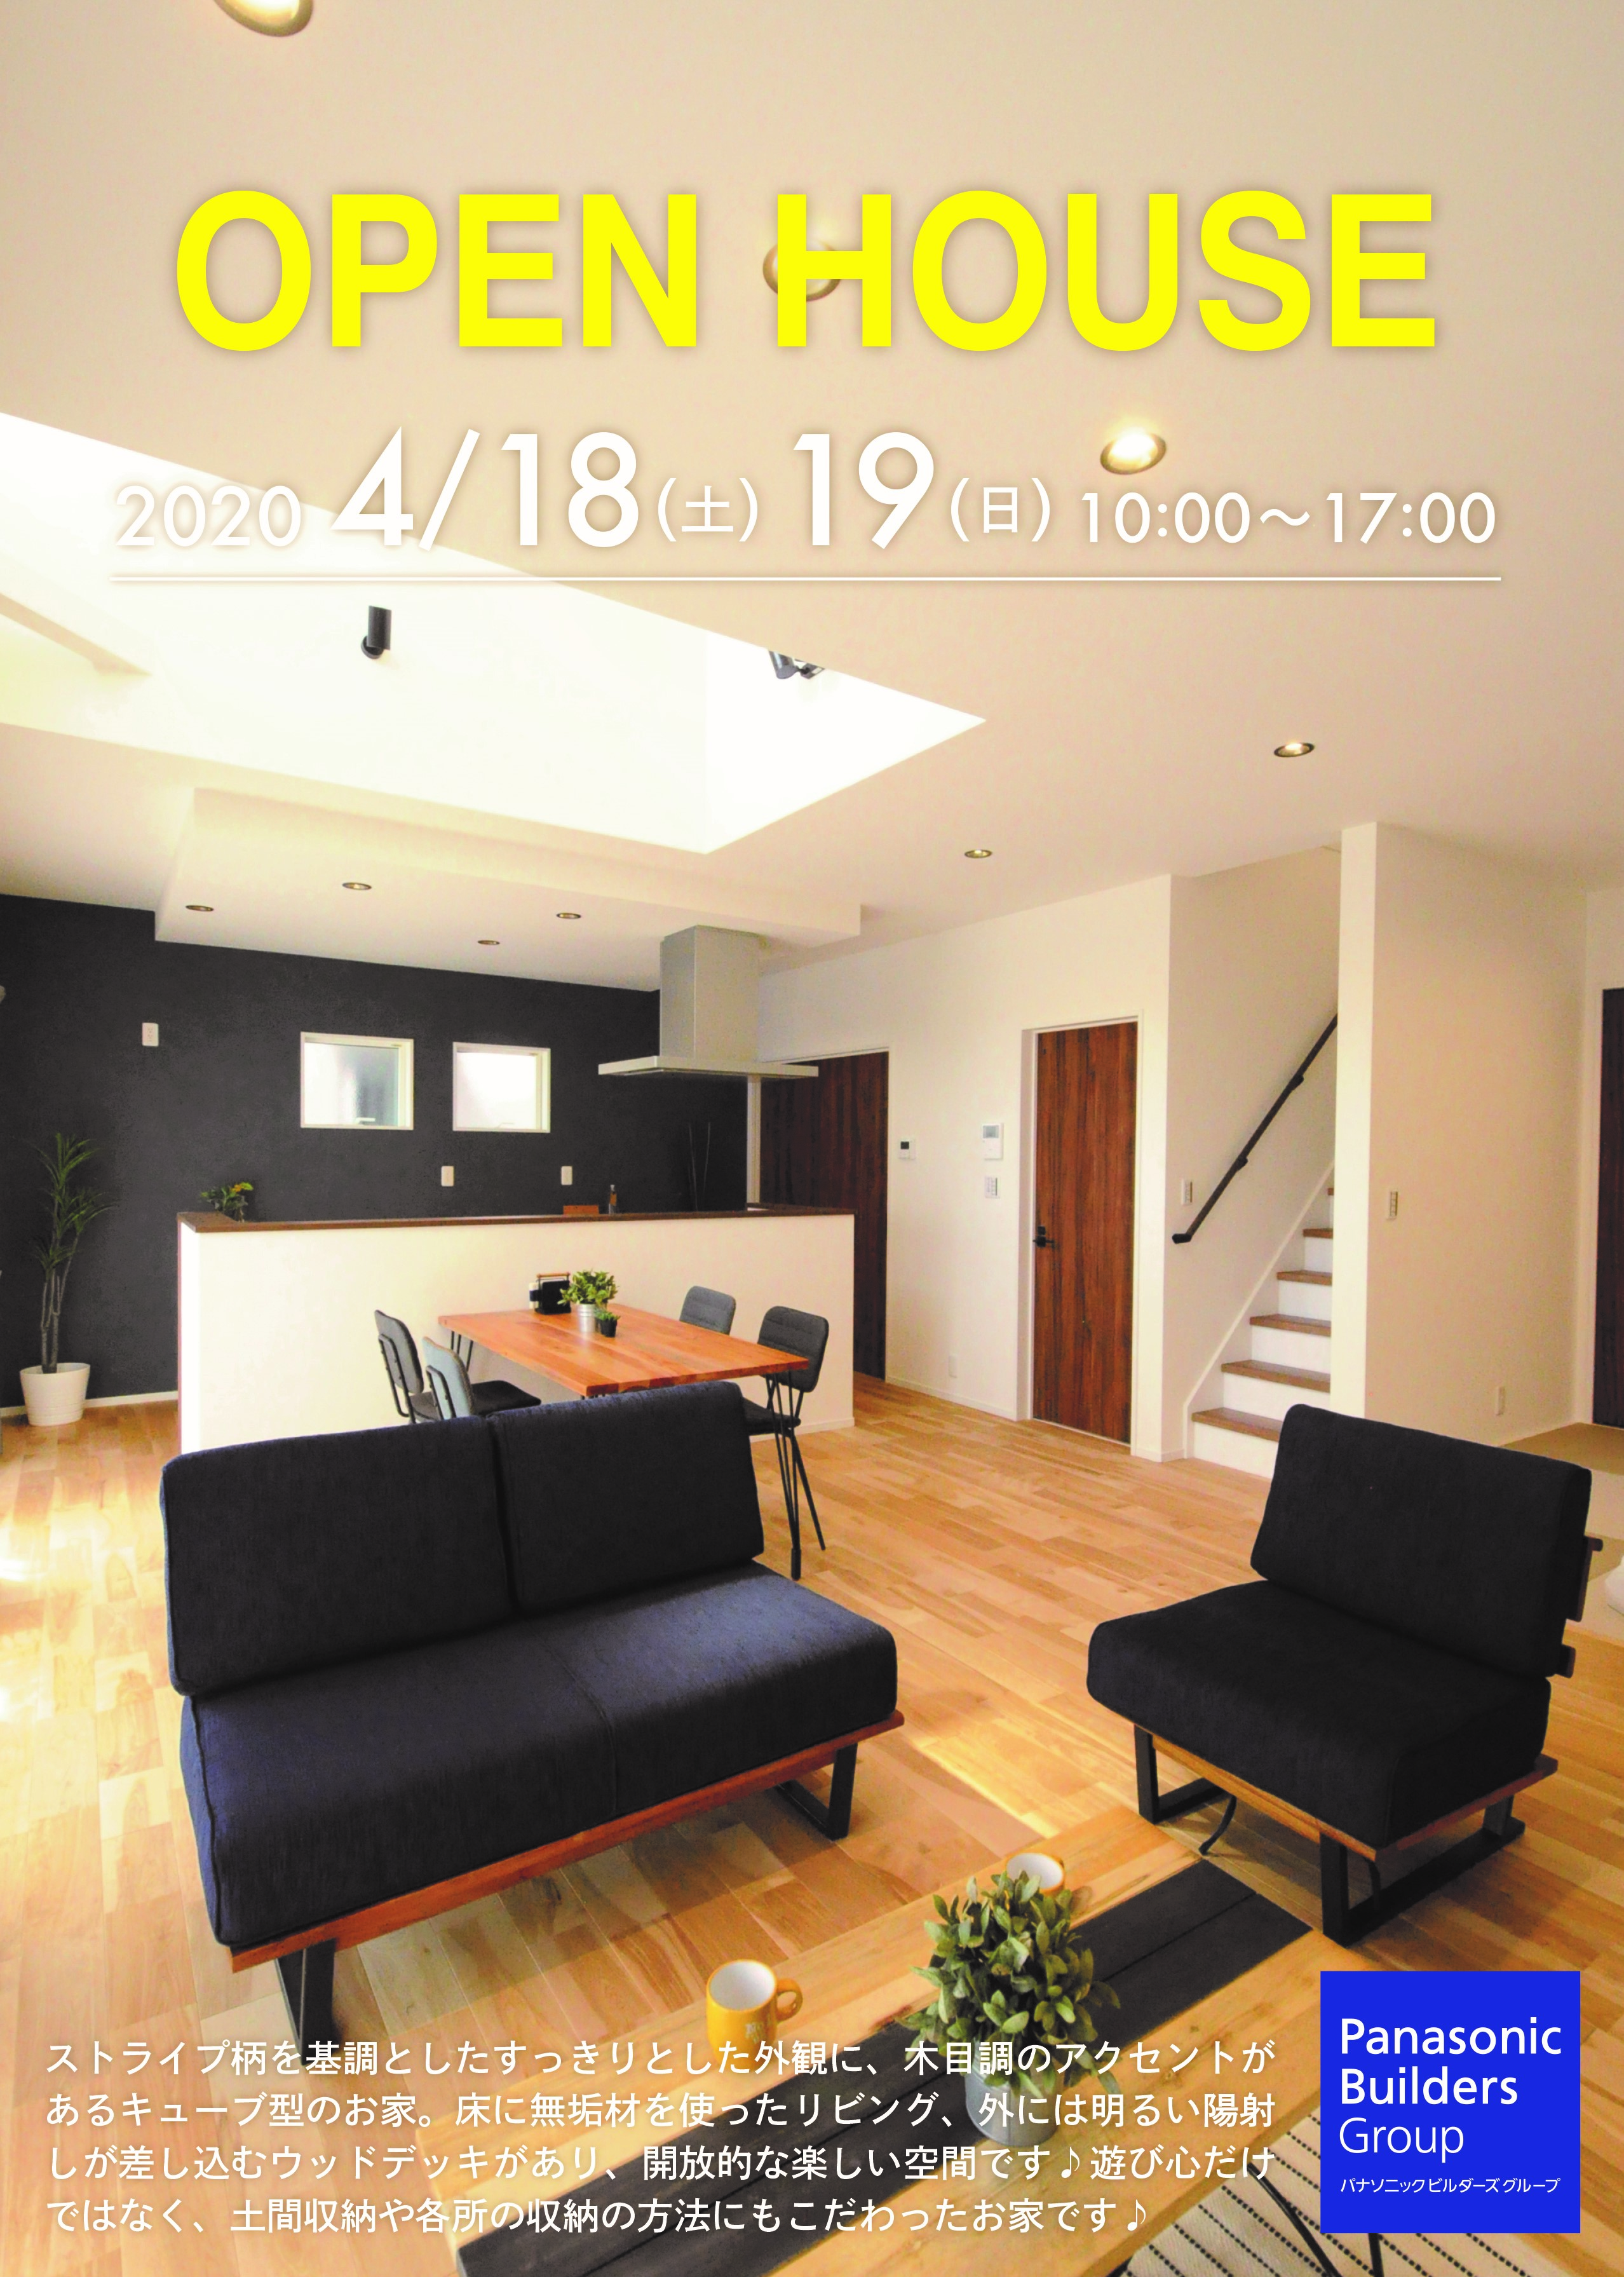 ★OPEN HOUSEのご案内です★